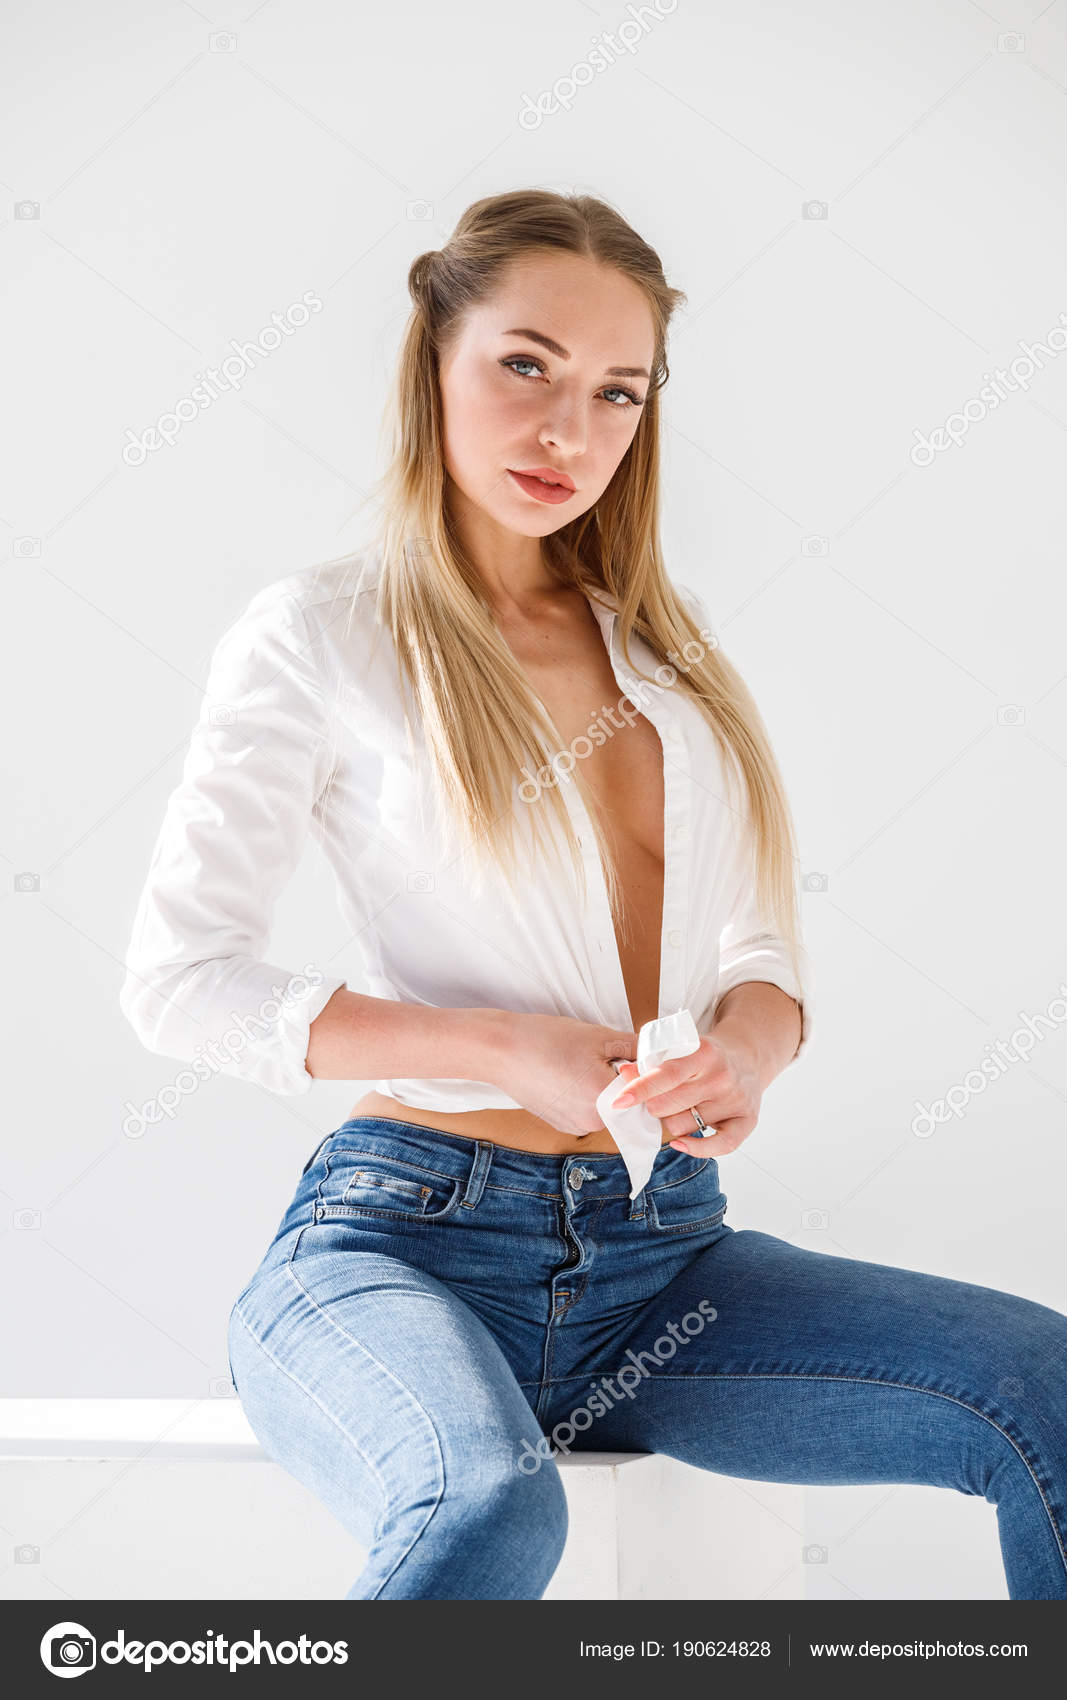 Infinitely possible sexy blonde posing in jeans